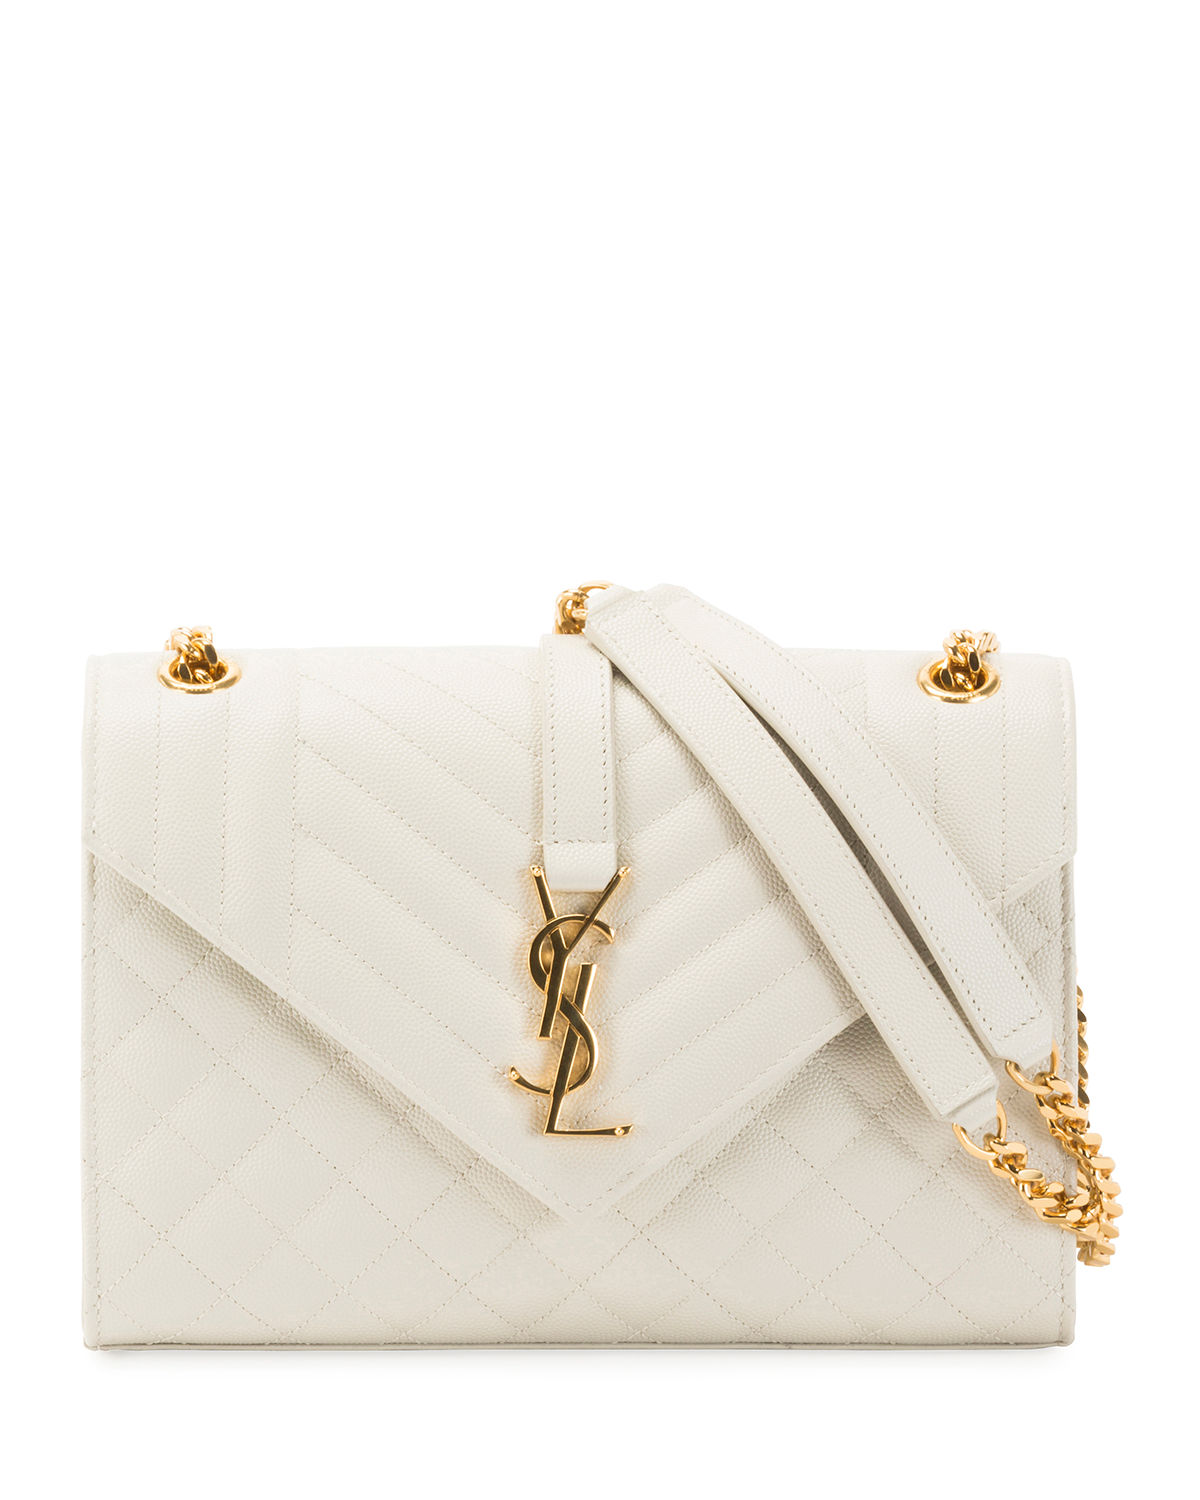 05d25faf59c Saint Laurent V Flap Monogram Ysl Medium Envelope Chain Shoulder Bag -  Golden Hardware In White